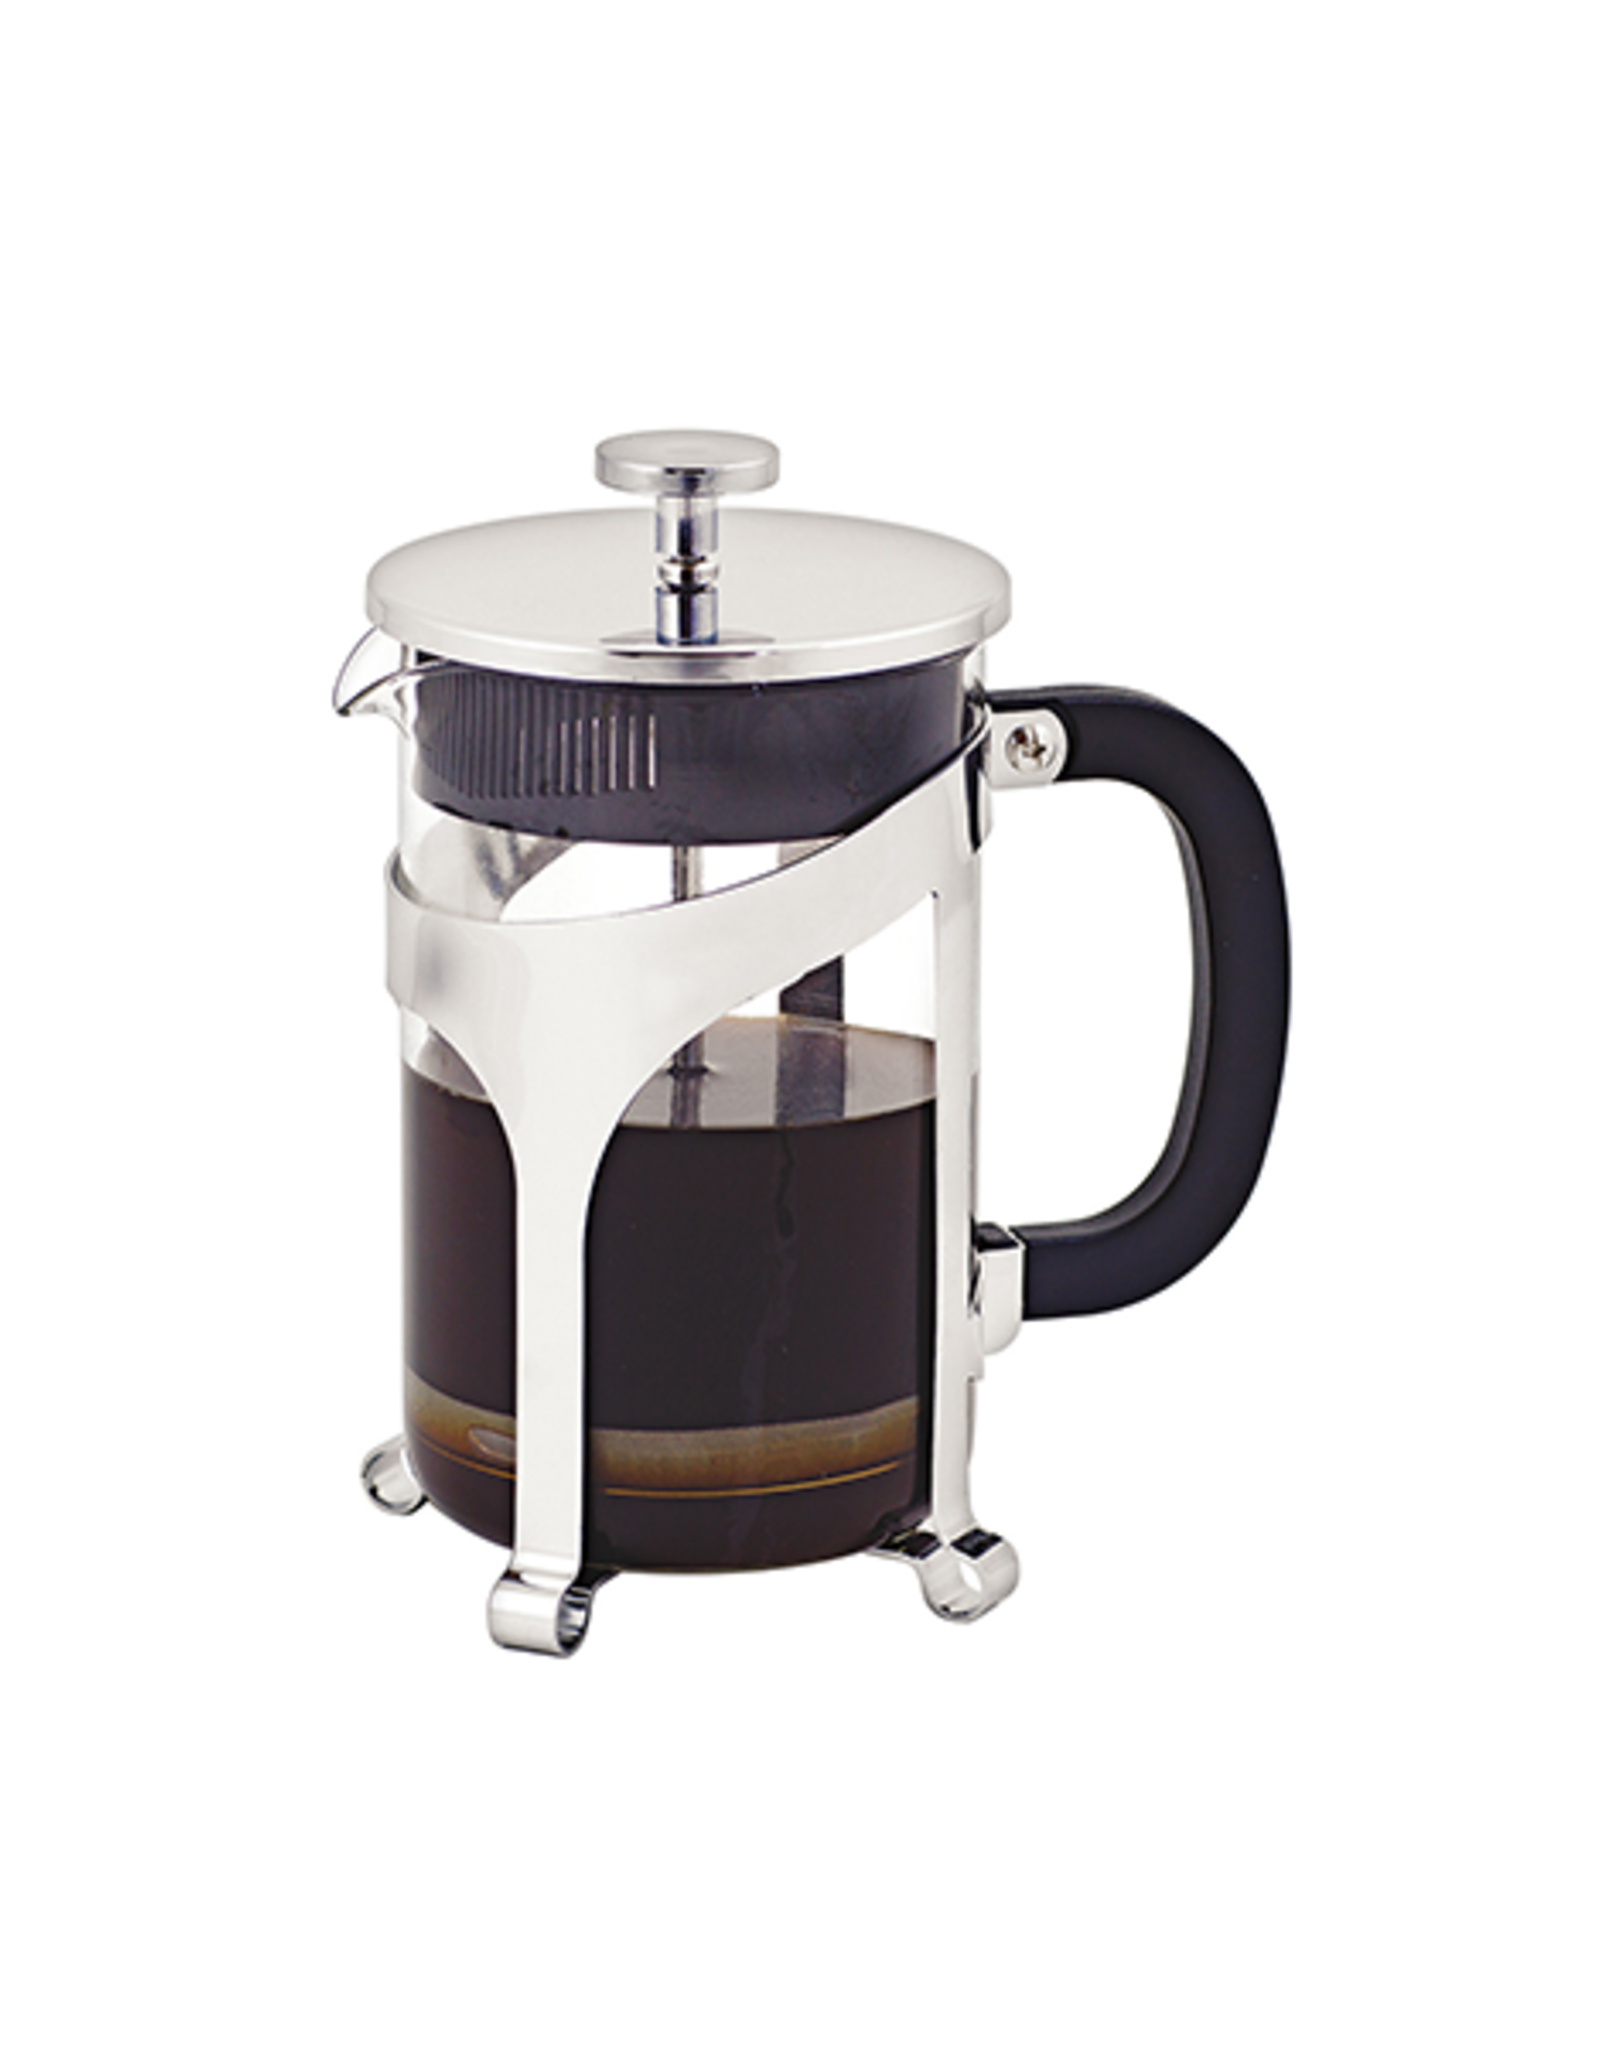 Avanti Homewares Cafe Press Coffee Plunger 750ml 6 Cup